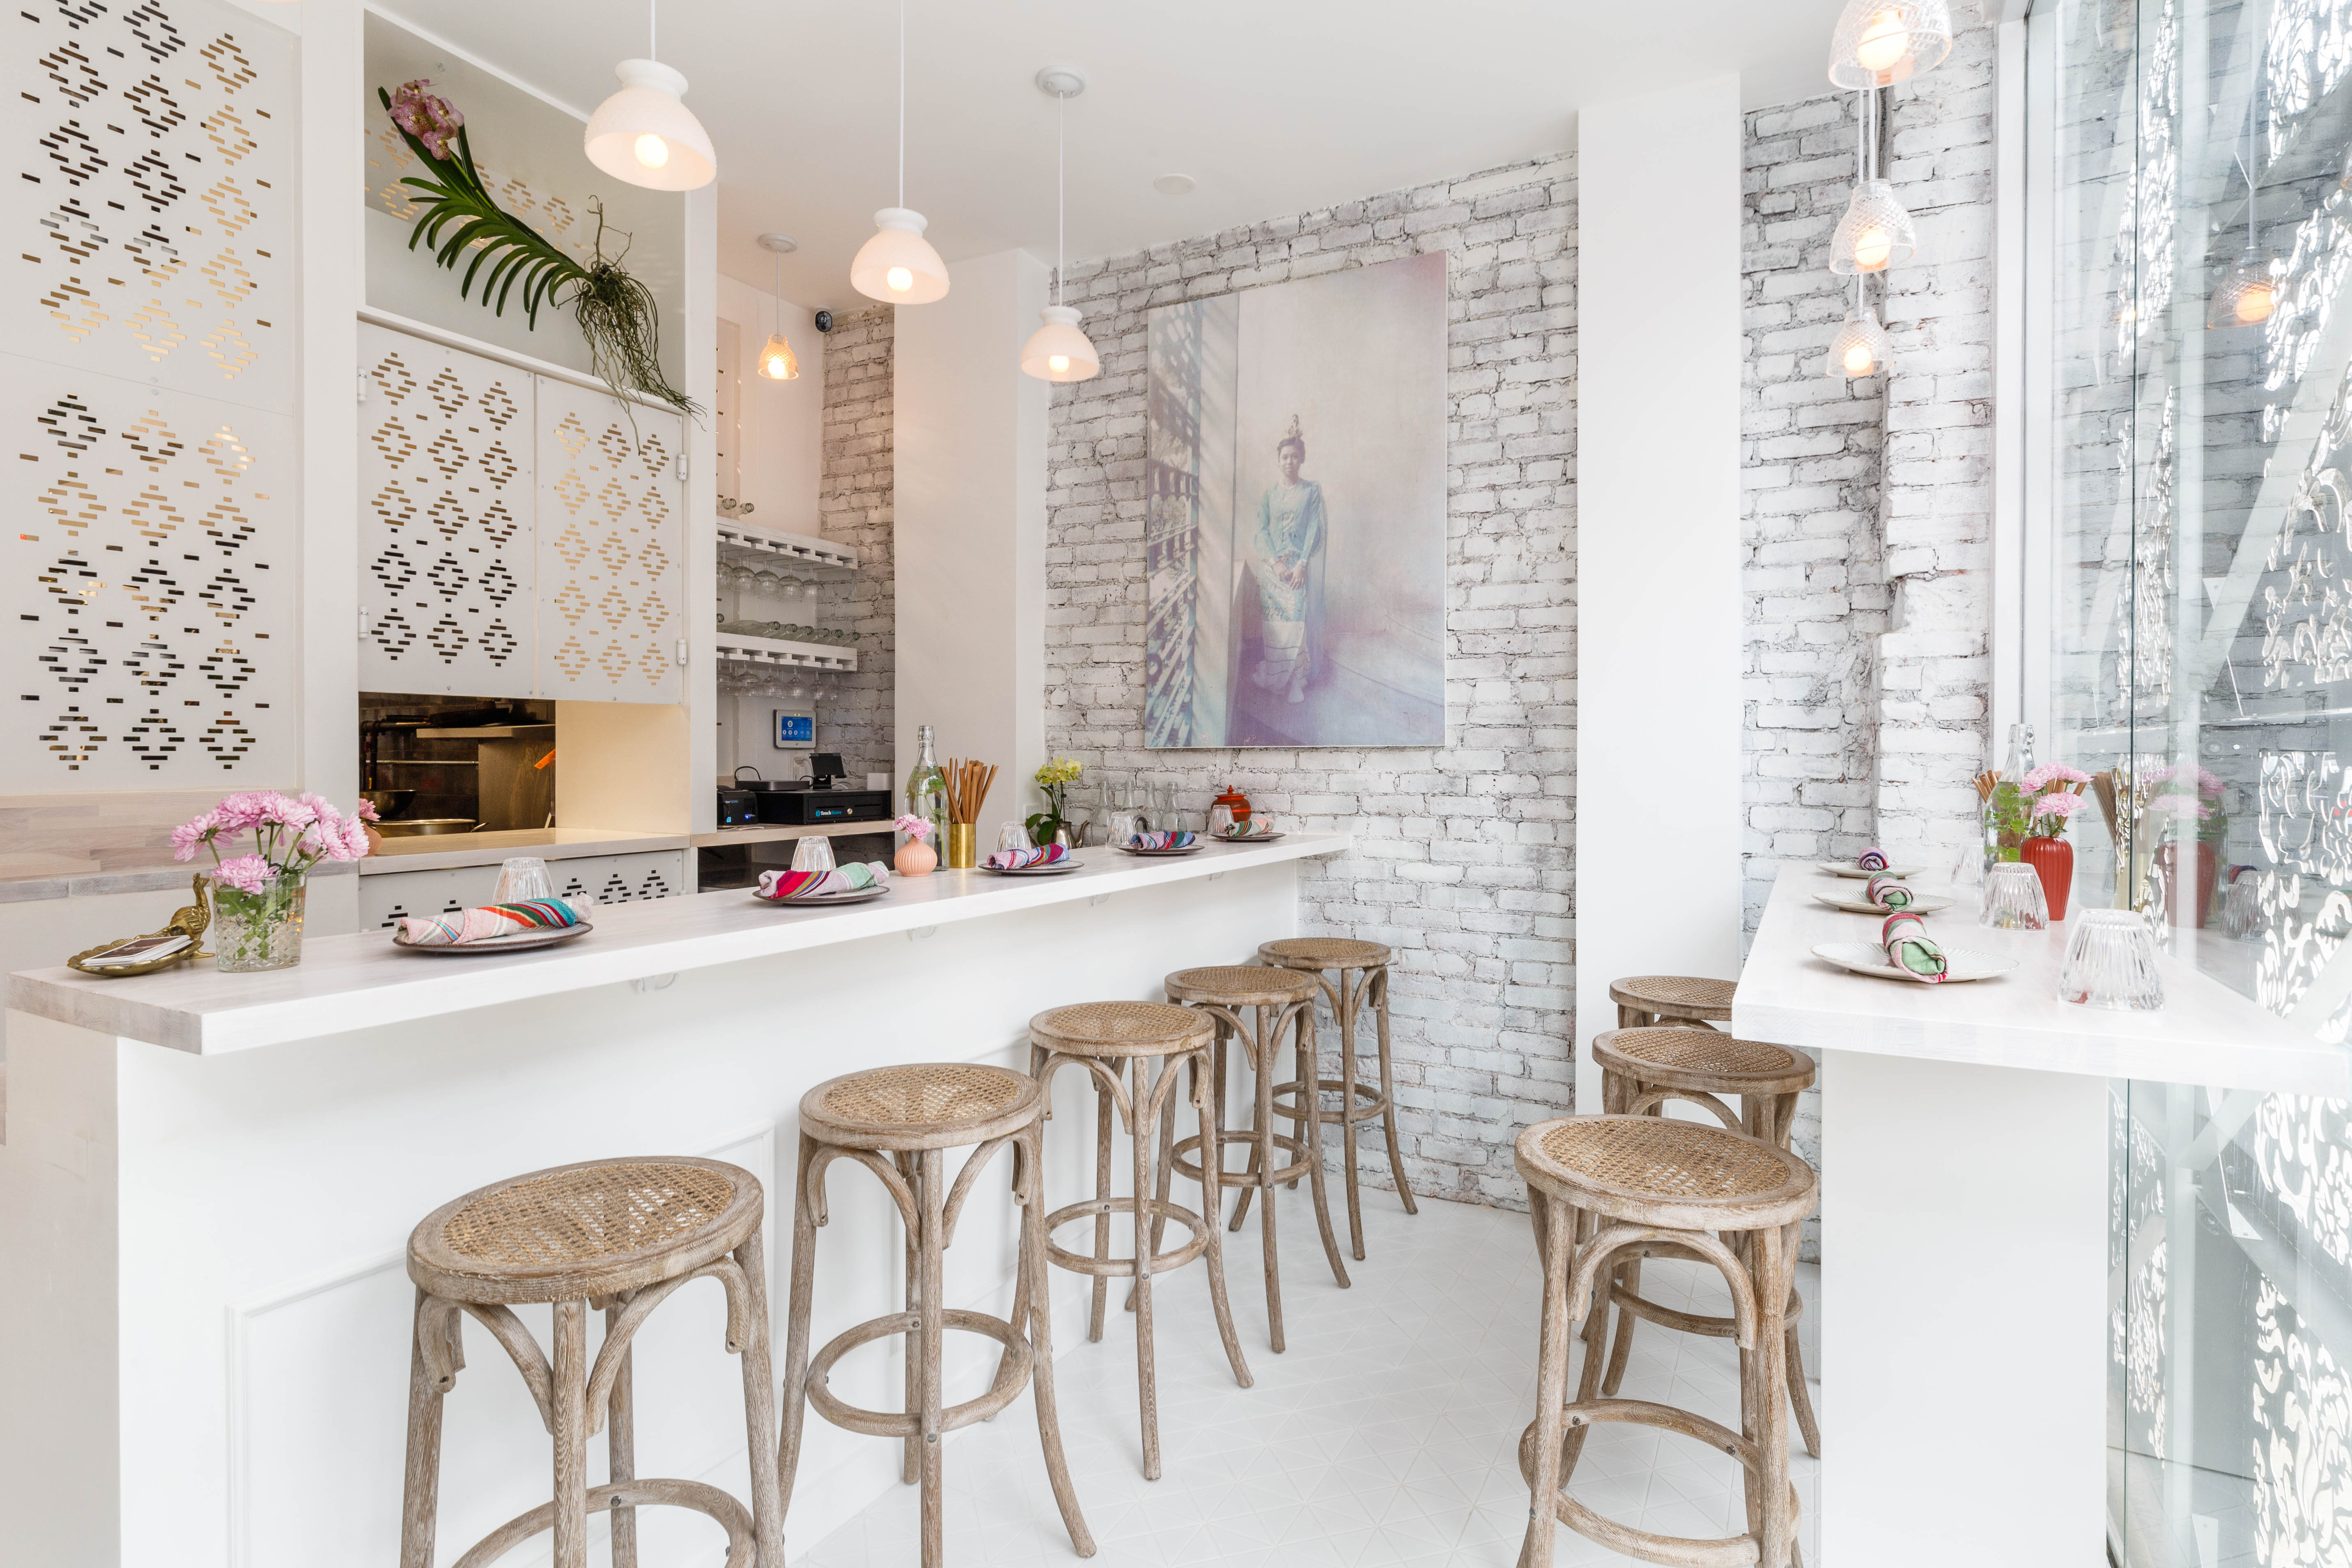 The interior of Burmese restaurant Rangoon which has white counters, wooden stools lined up against it, and exposed brick white walls in the back